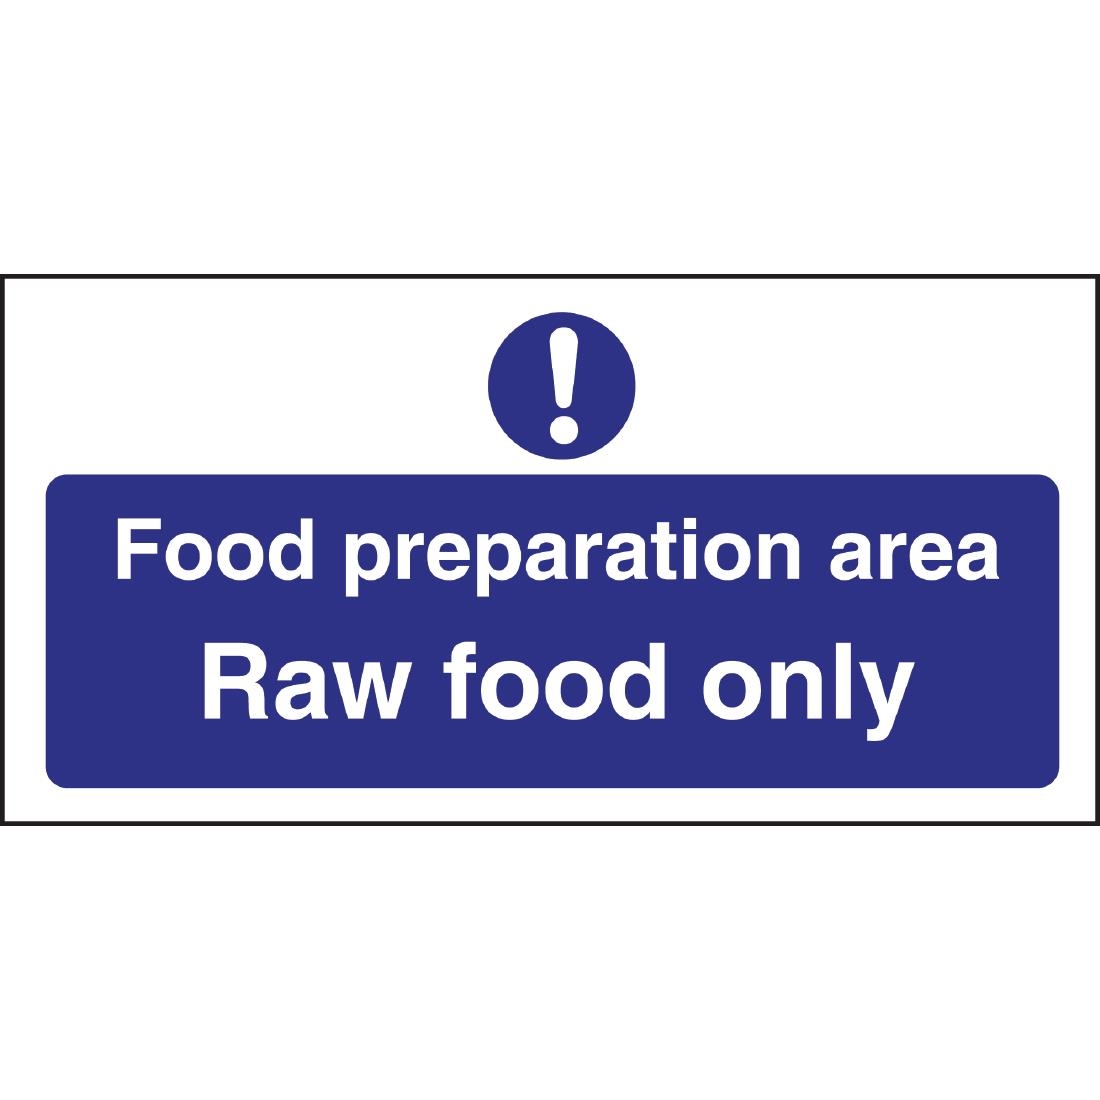 vogue food preparation area raw food only sign l buy online browse our full vogue range